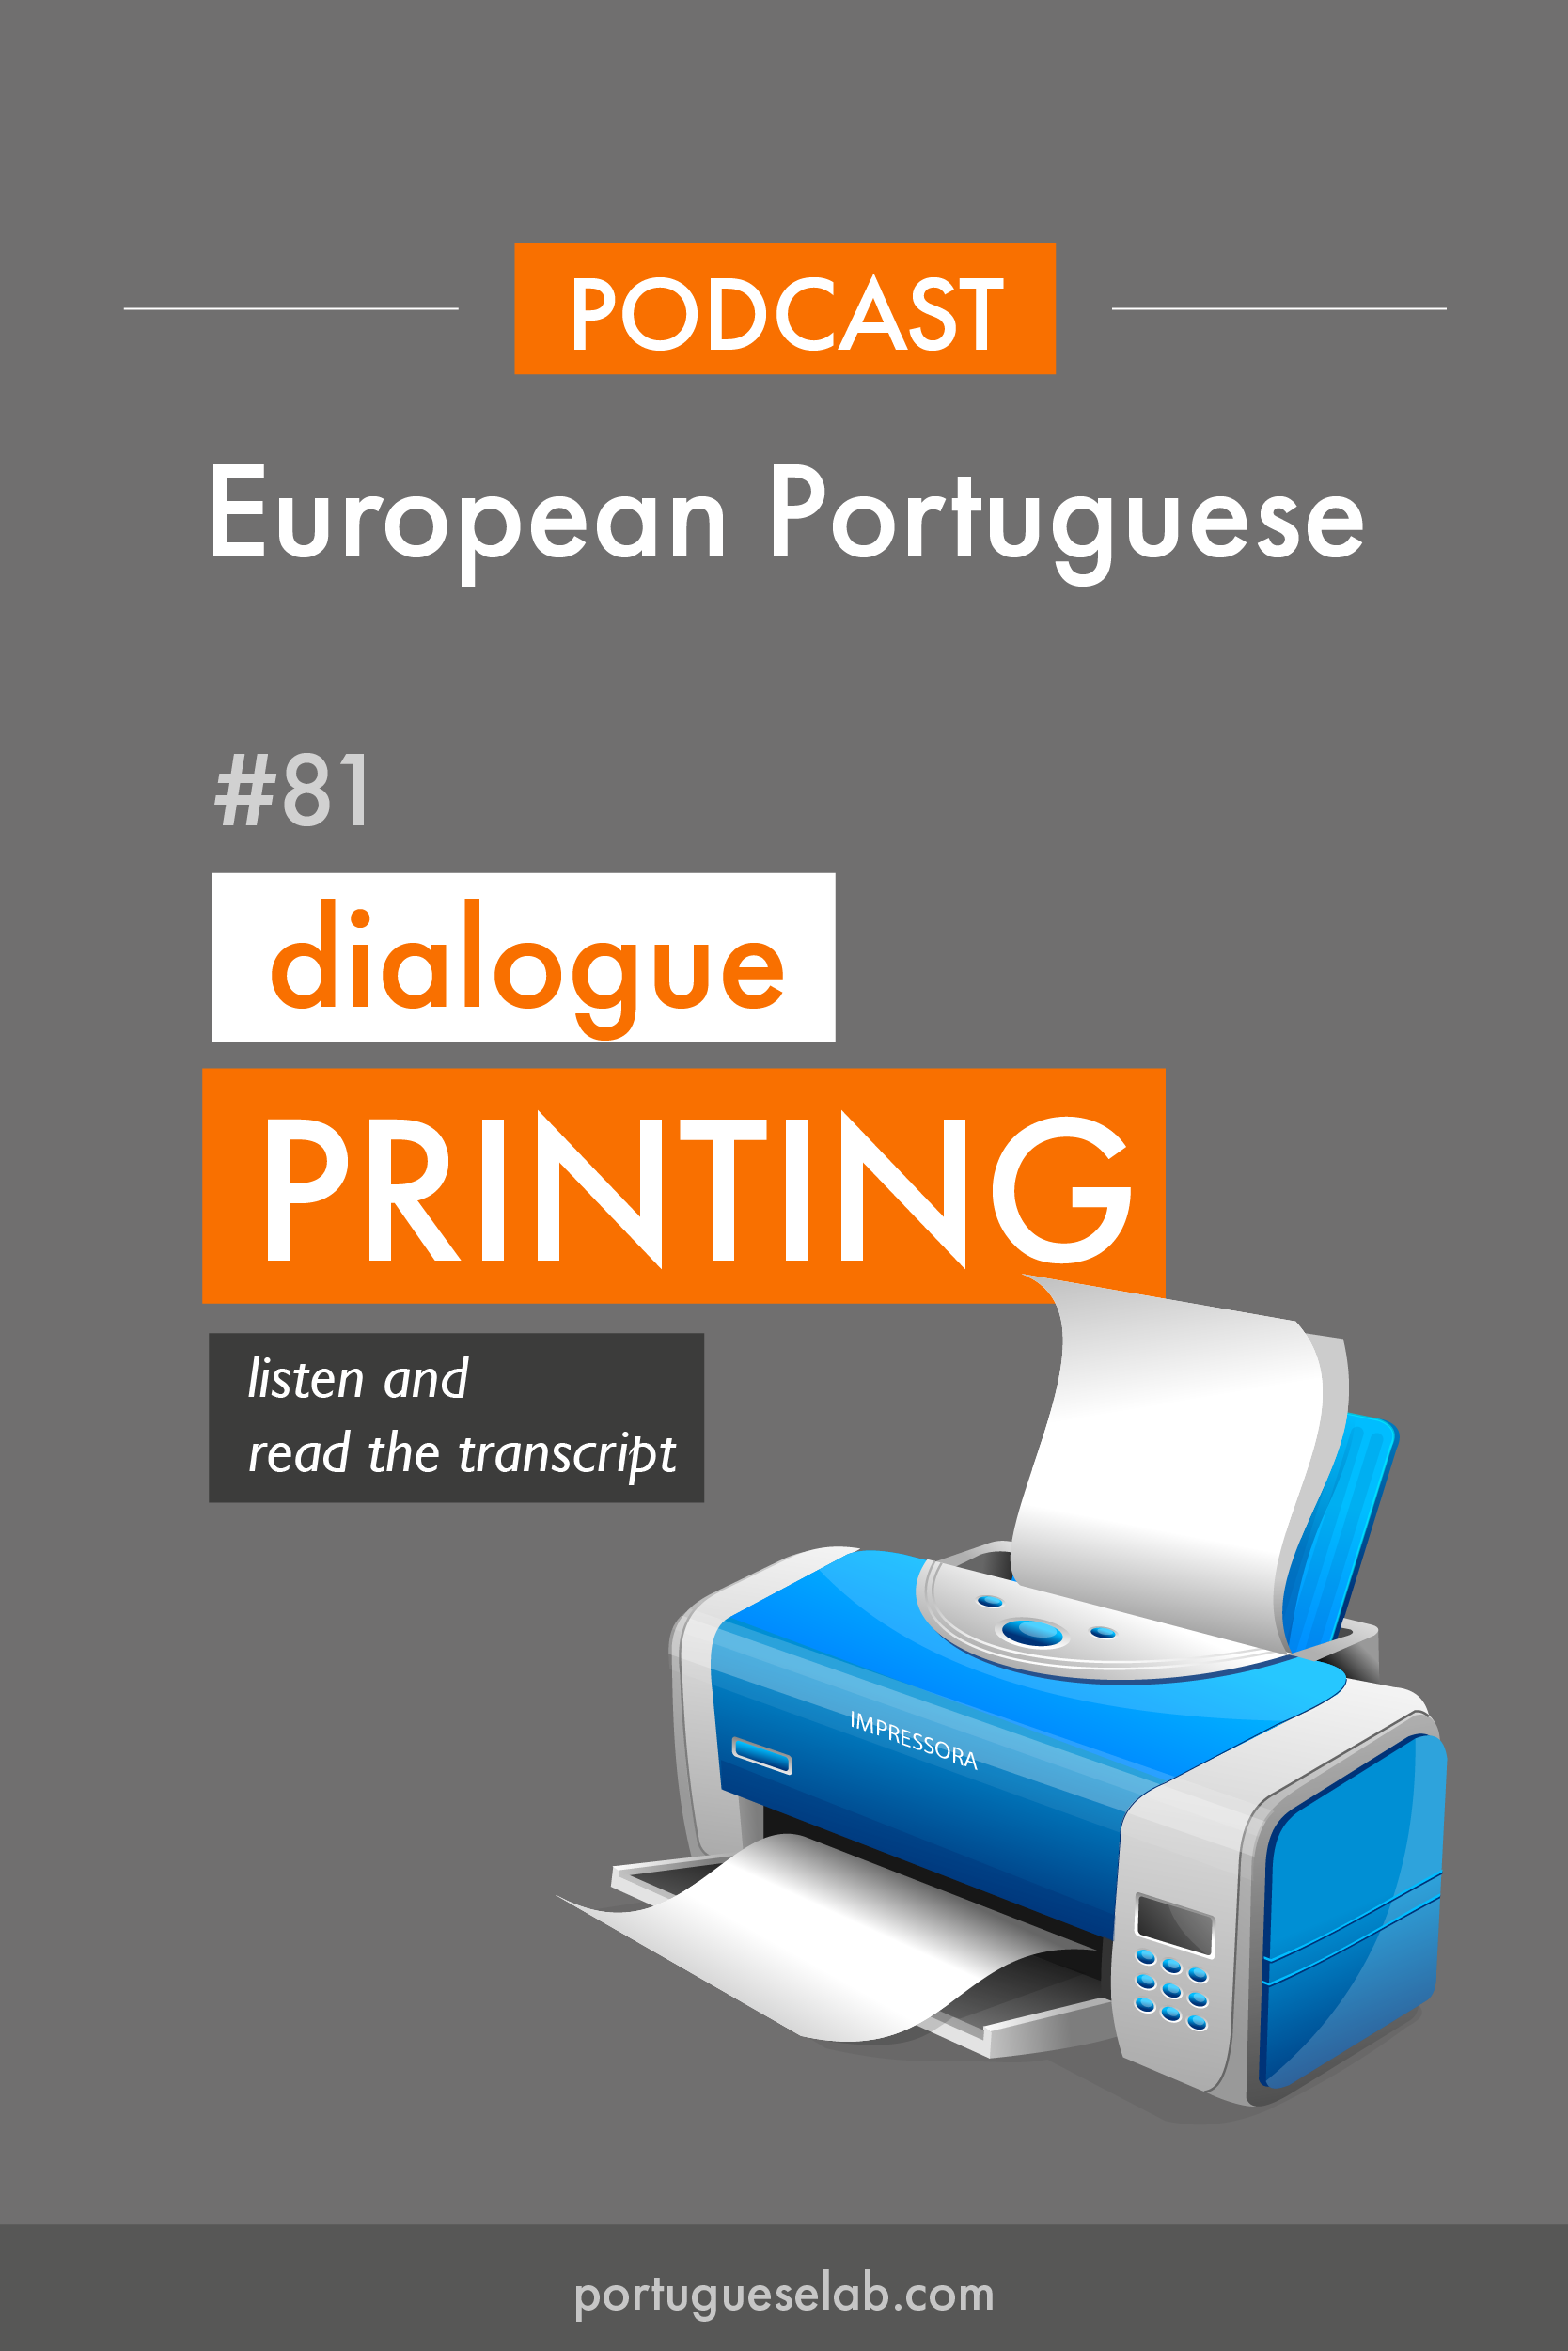 Portuguese Lab Podcast - European Portuguese - 81 - Using the printer in Portuguese.png